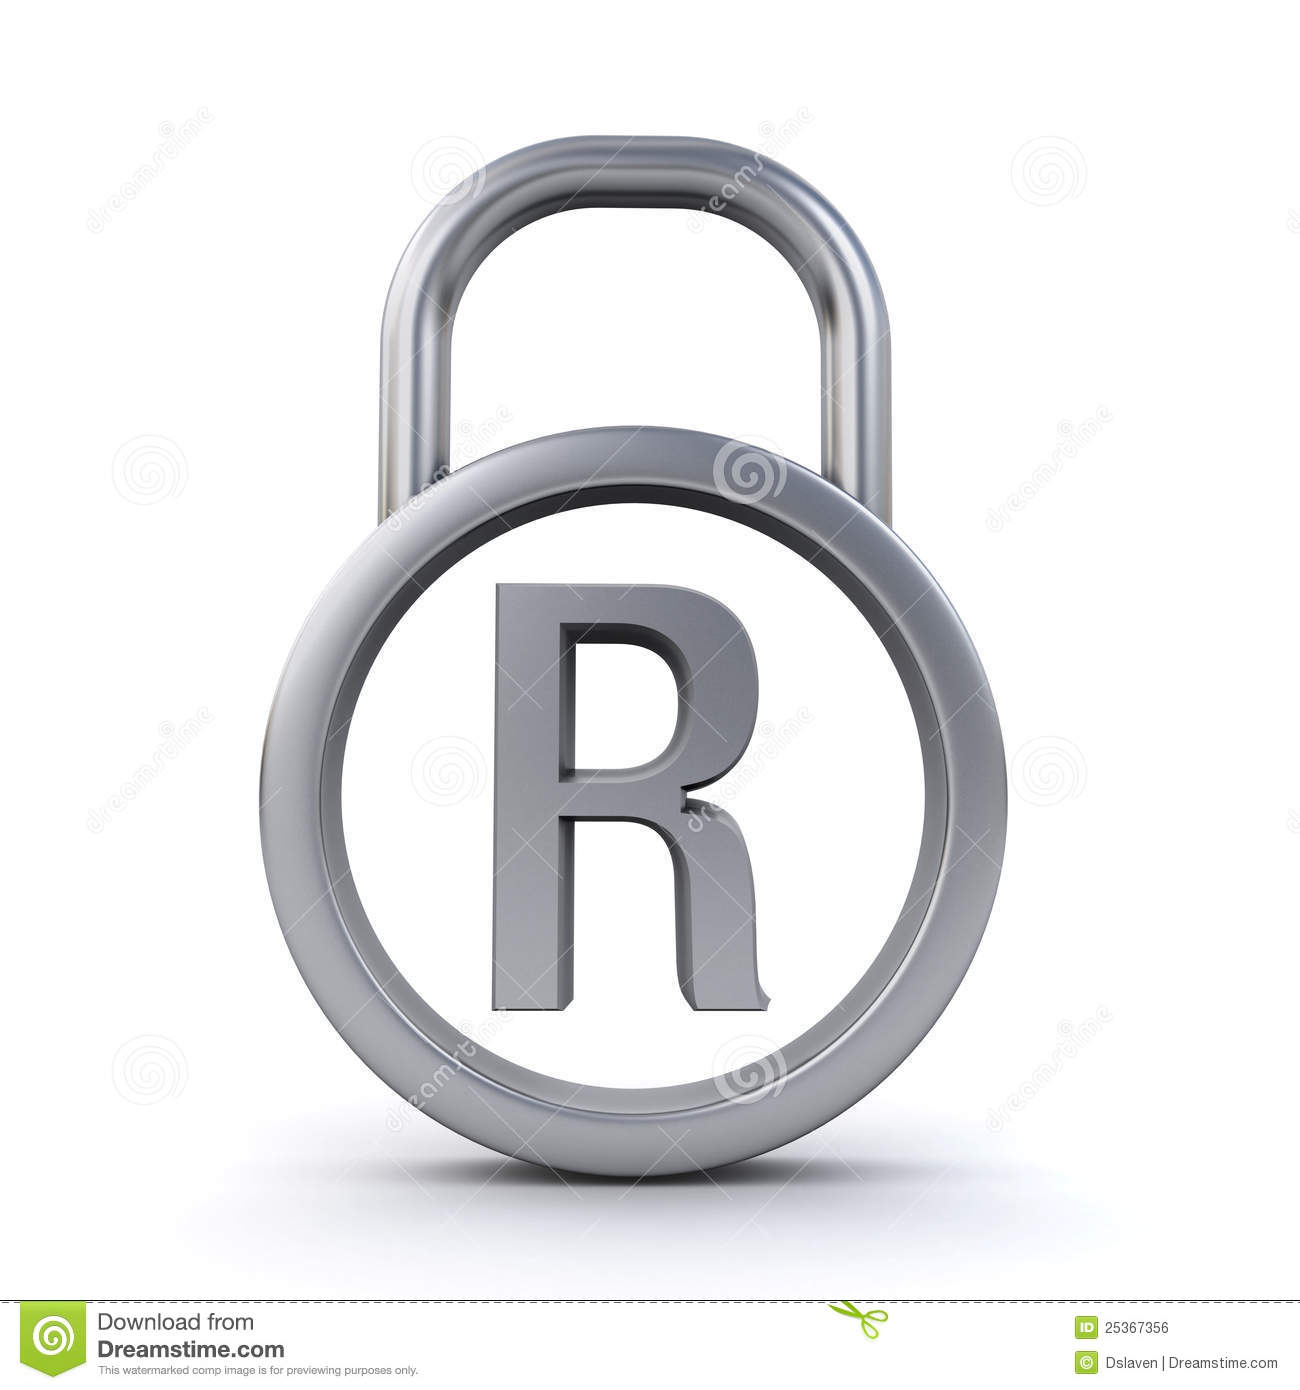 Image result for registered trademark